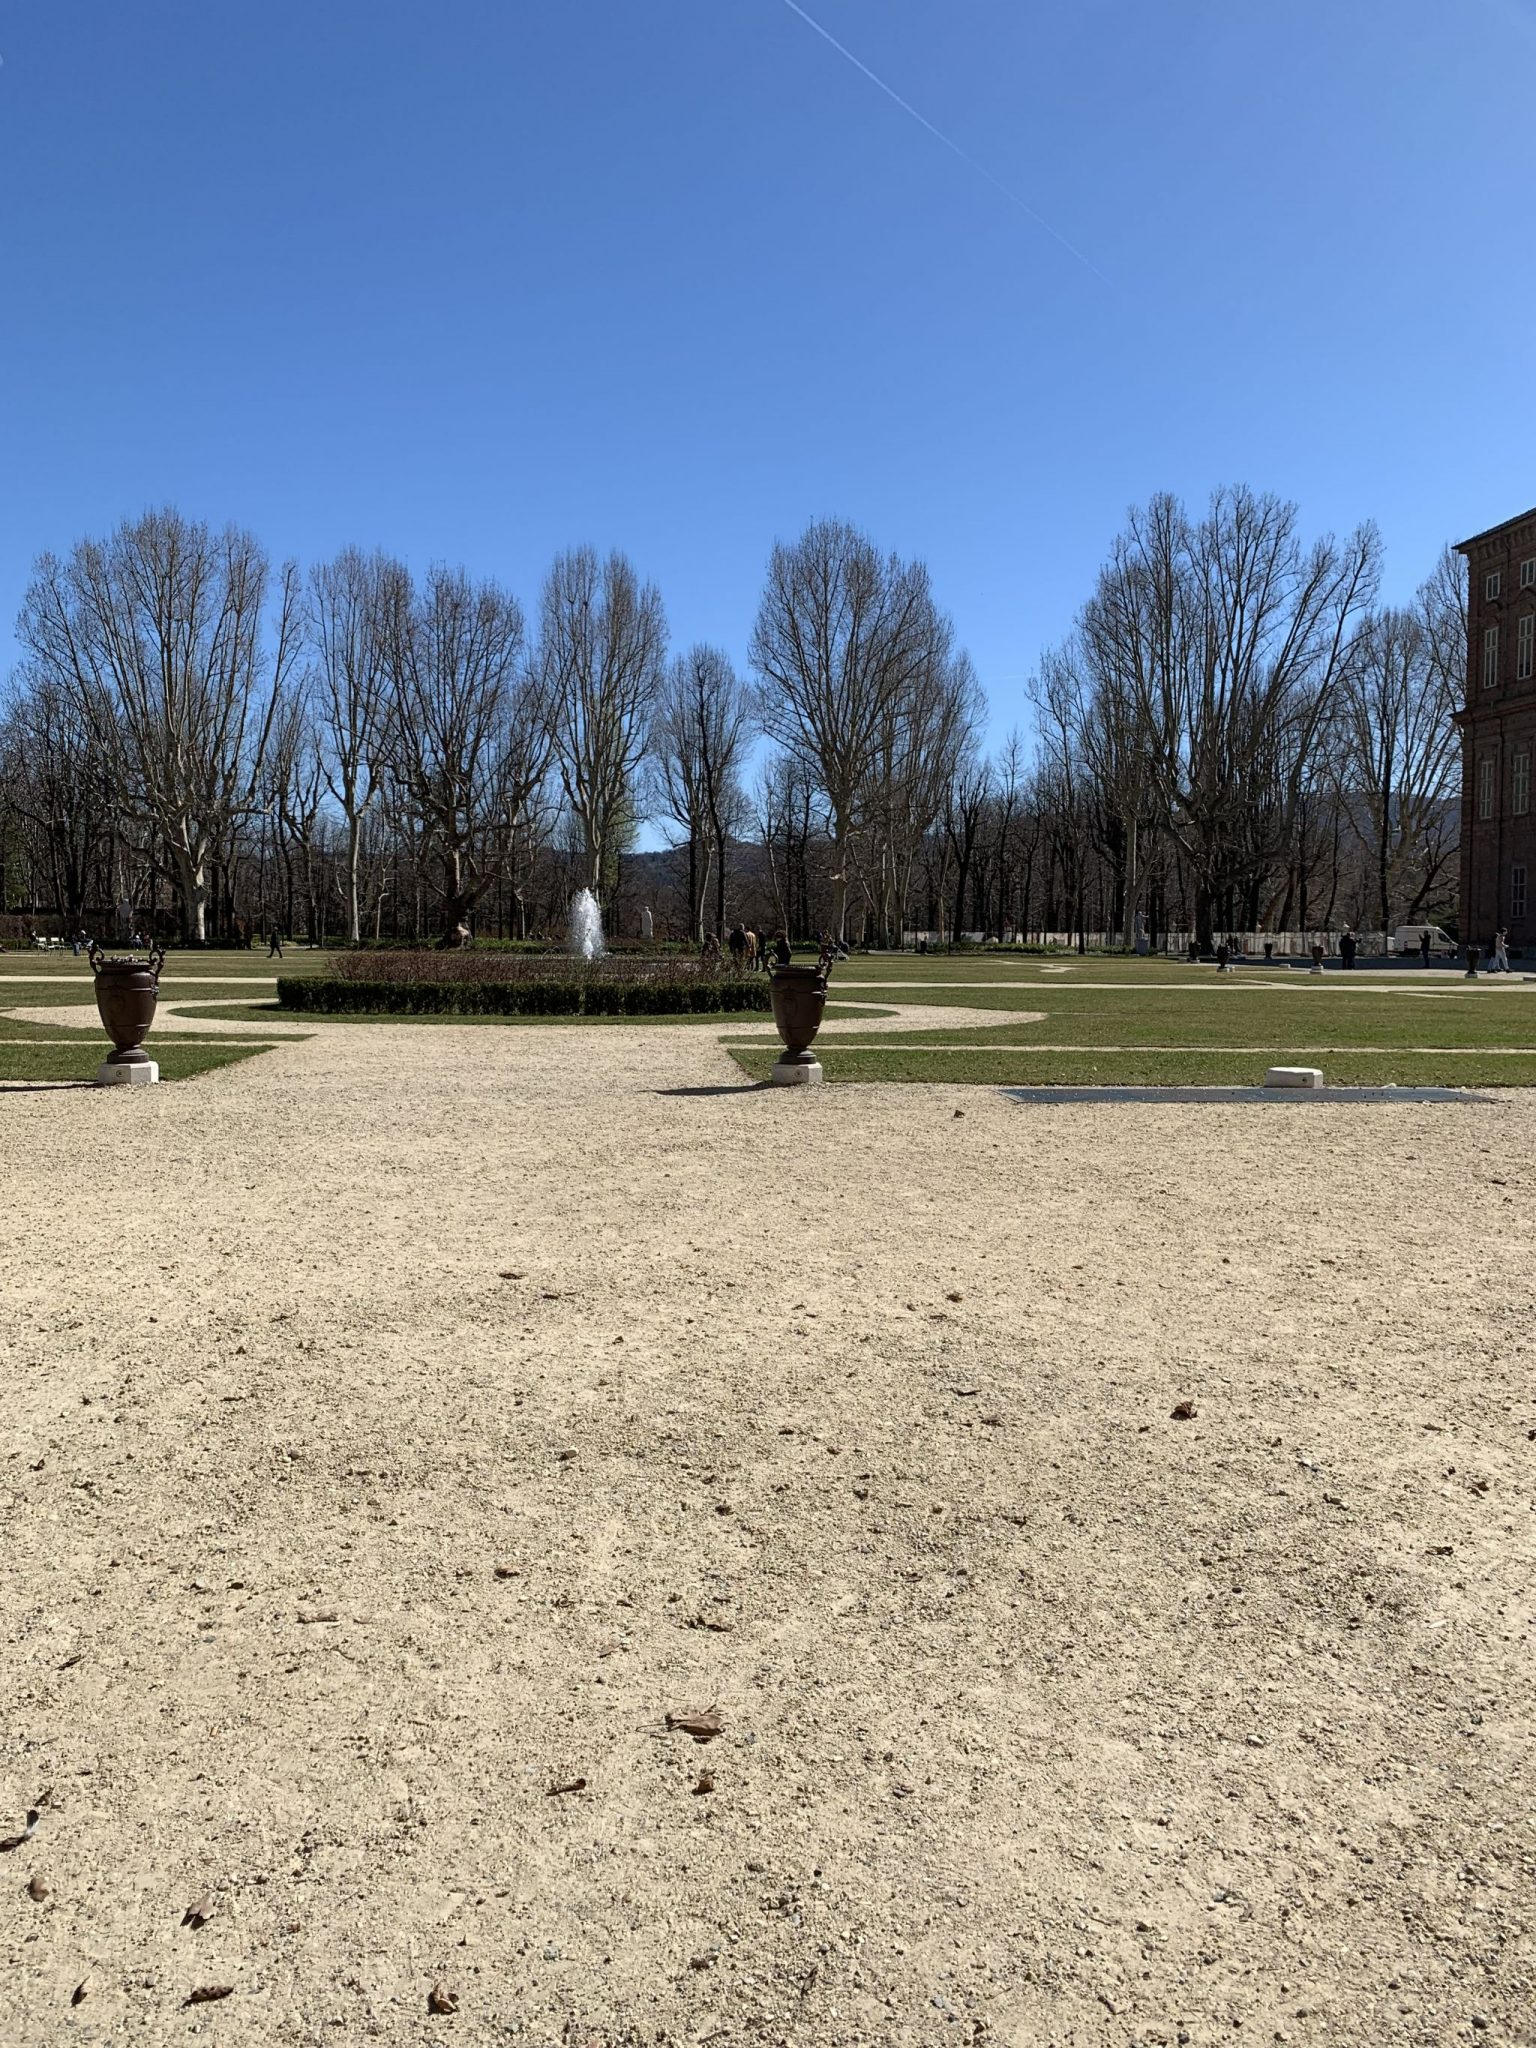 Royal Palace park in Turin